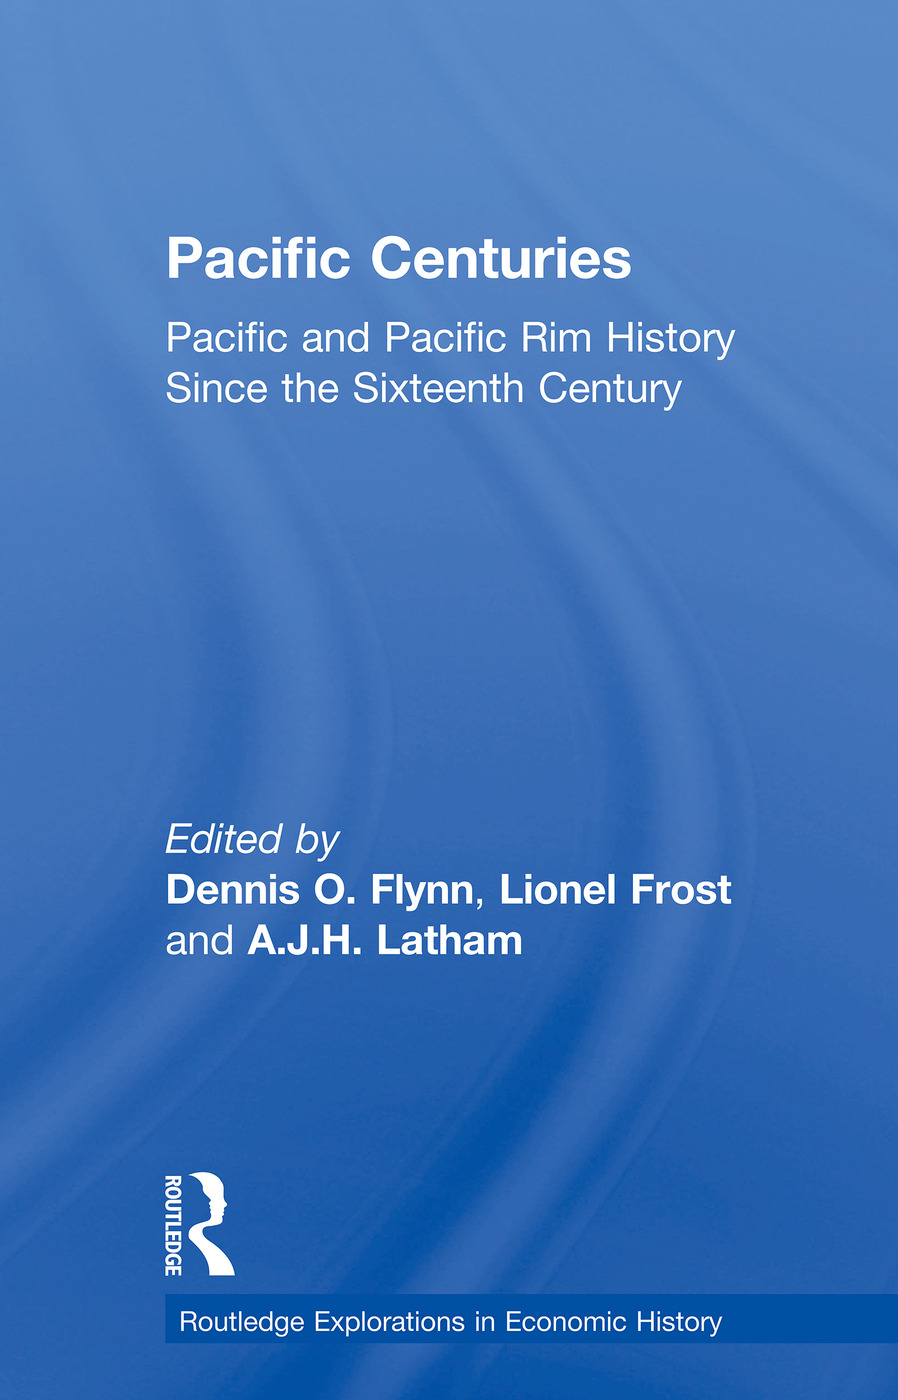 Pacific Centuries: Pacific and Pacific Rim Economic History Since the 16th Century book cover